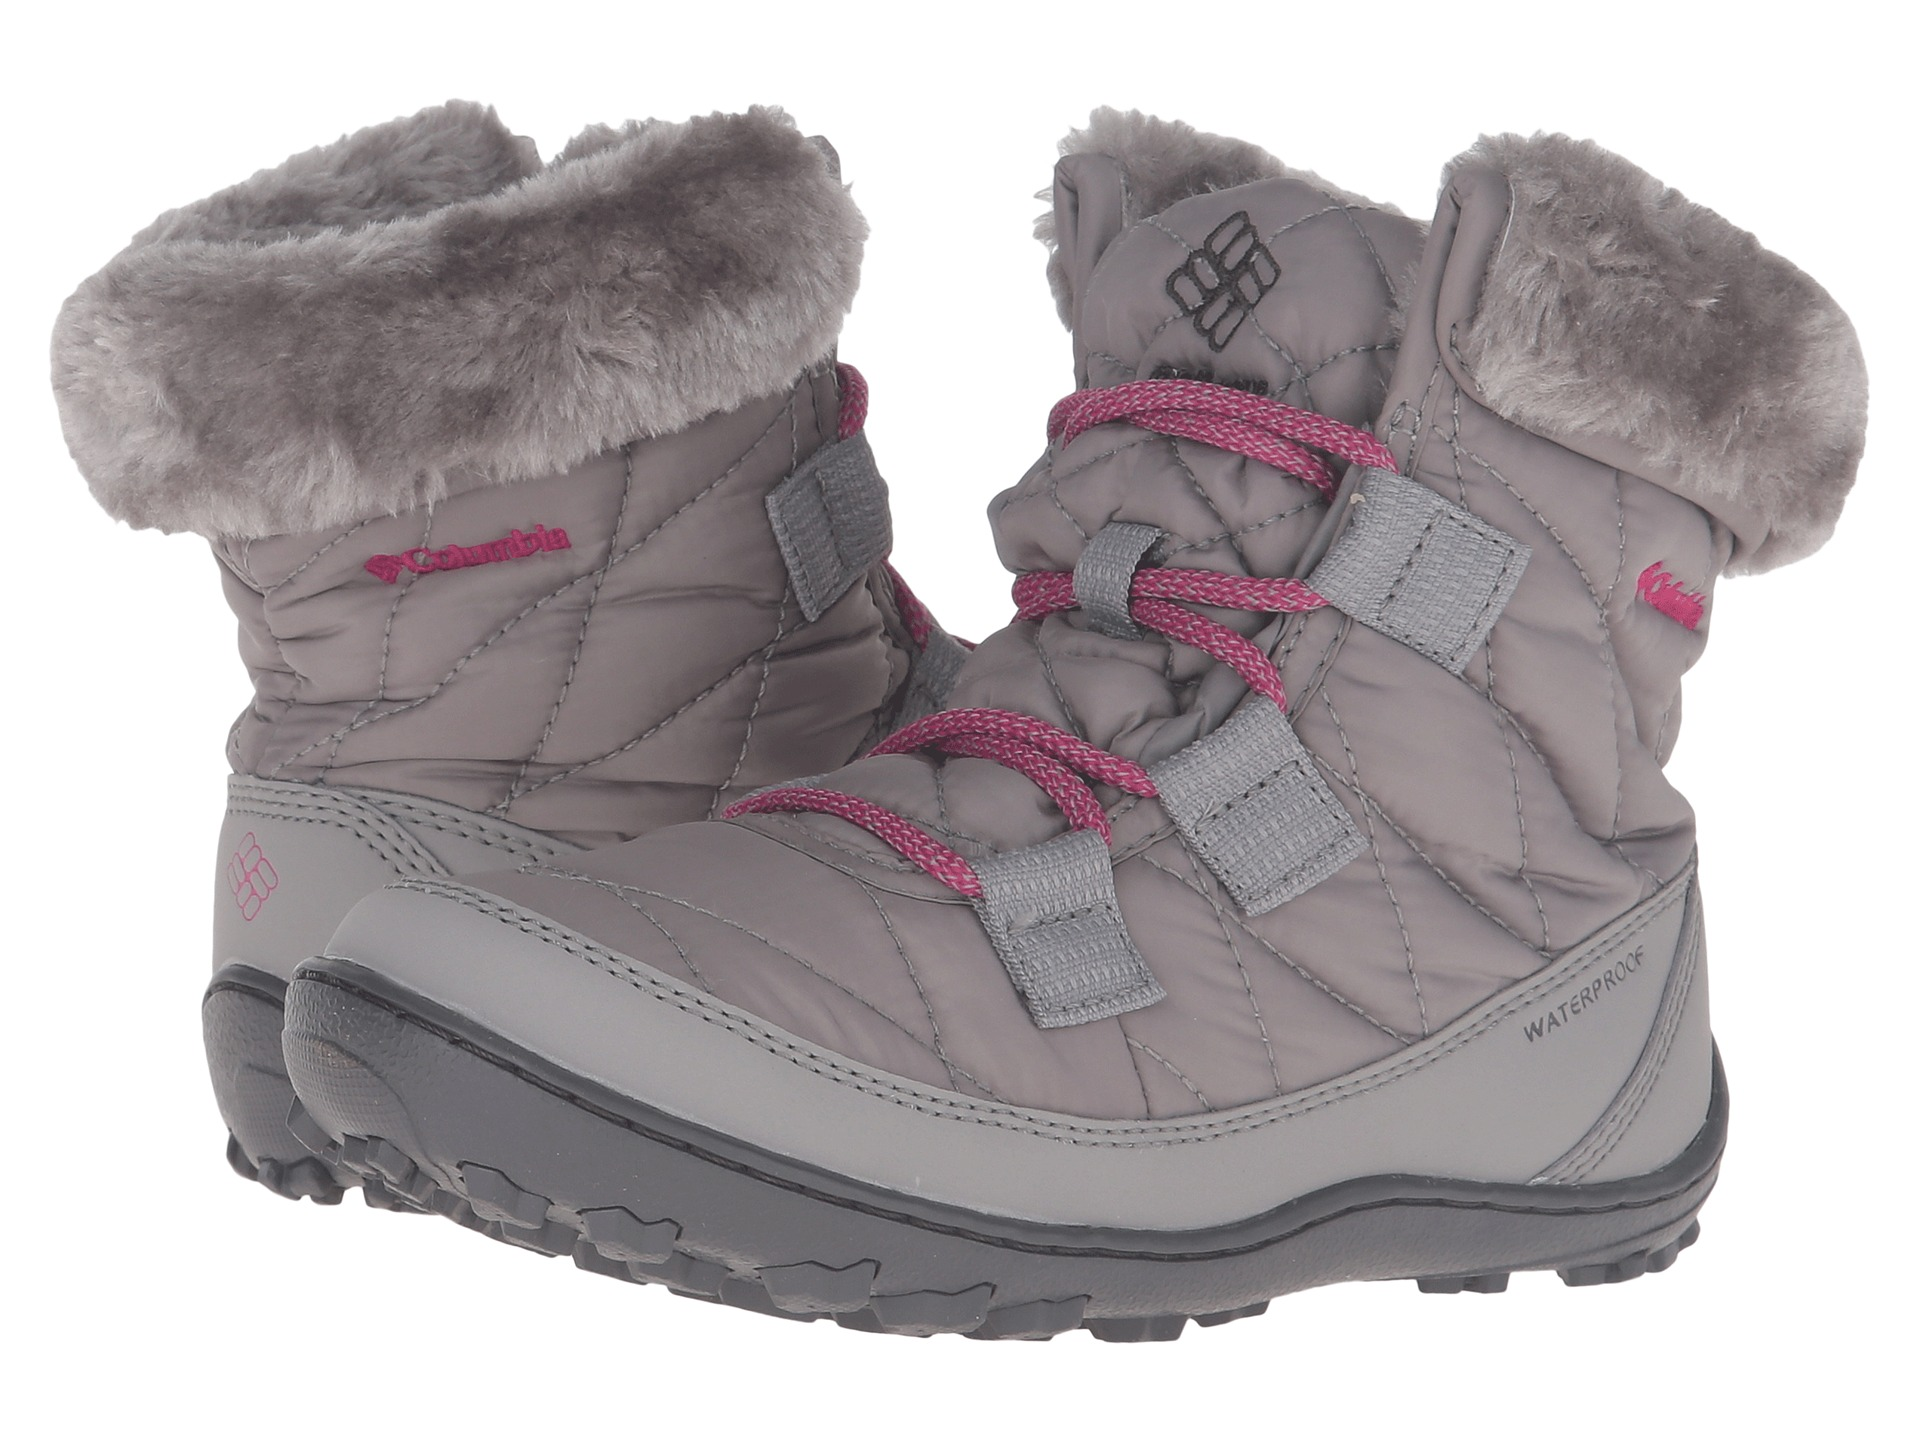 Shoes, Snow Boots, Girls | Shipped Free at Zappos